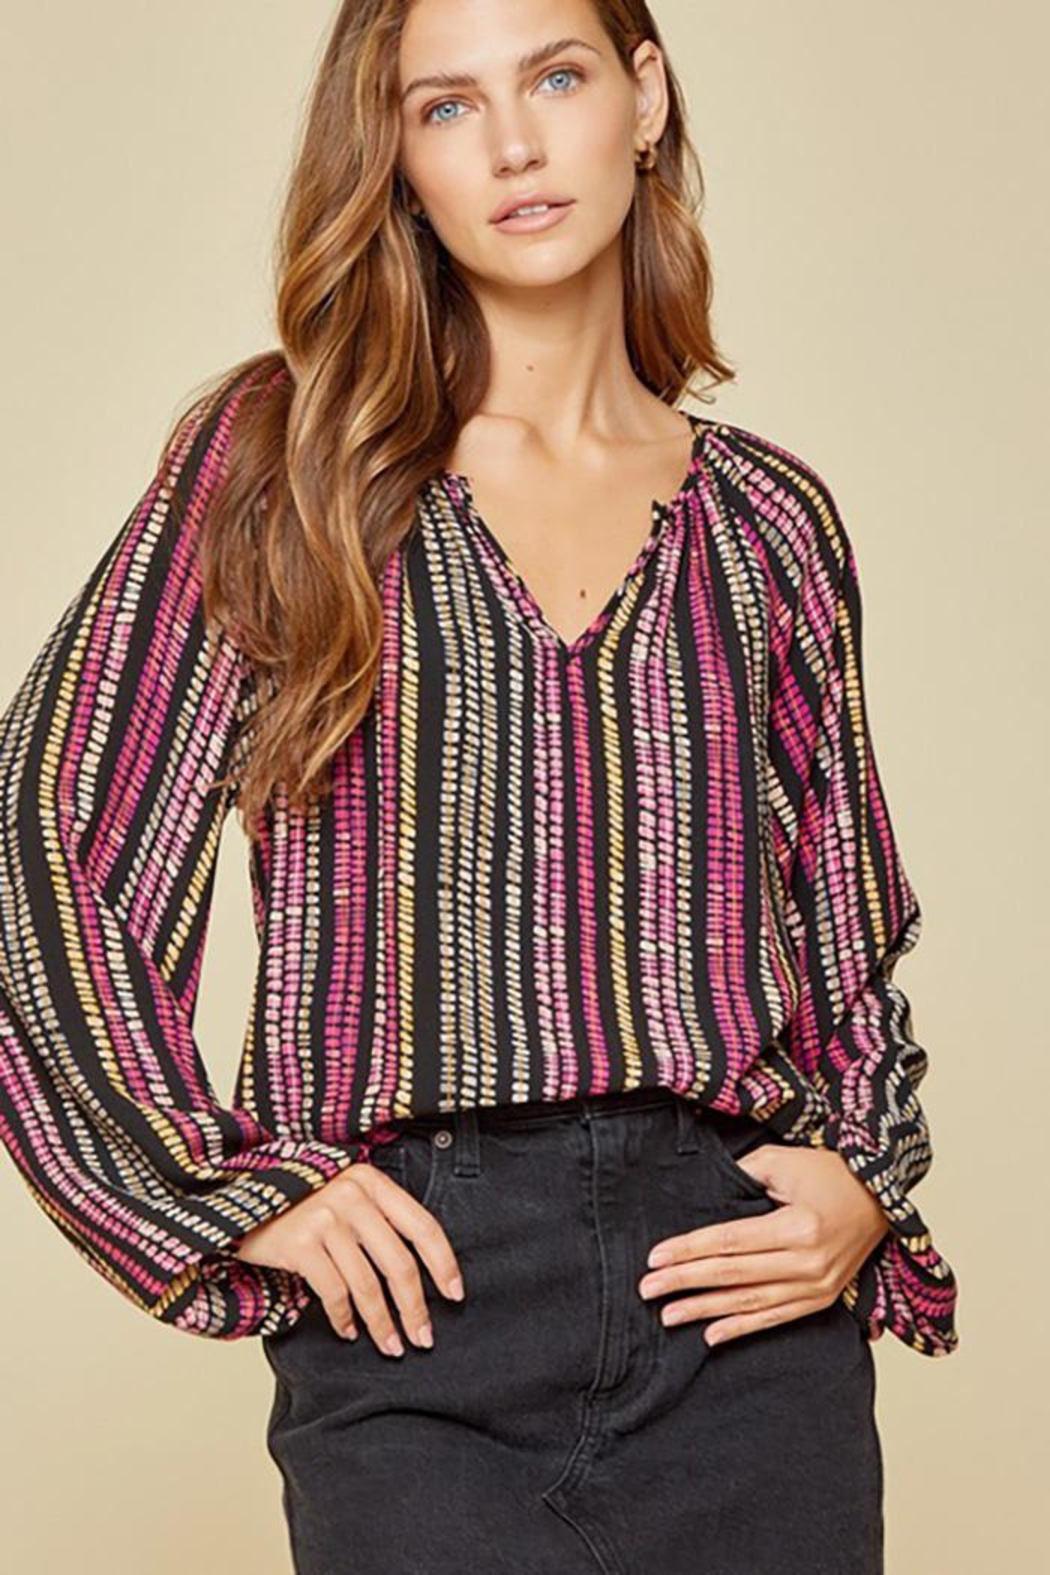 Andree by Unit Balloon Sleeve Long Sleeve Top - Main Image